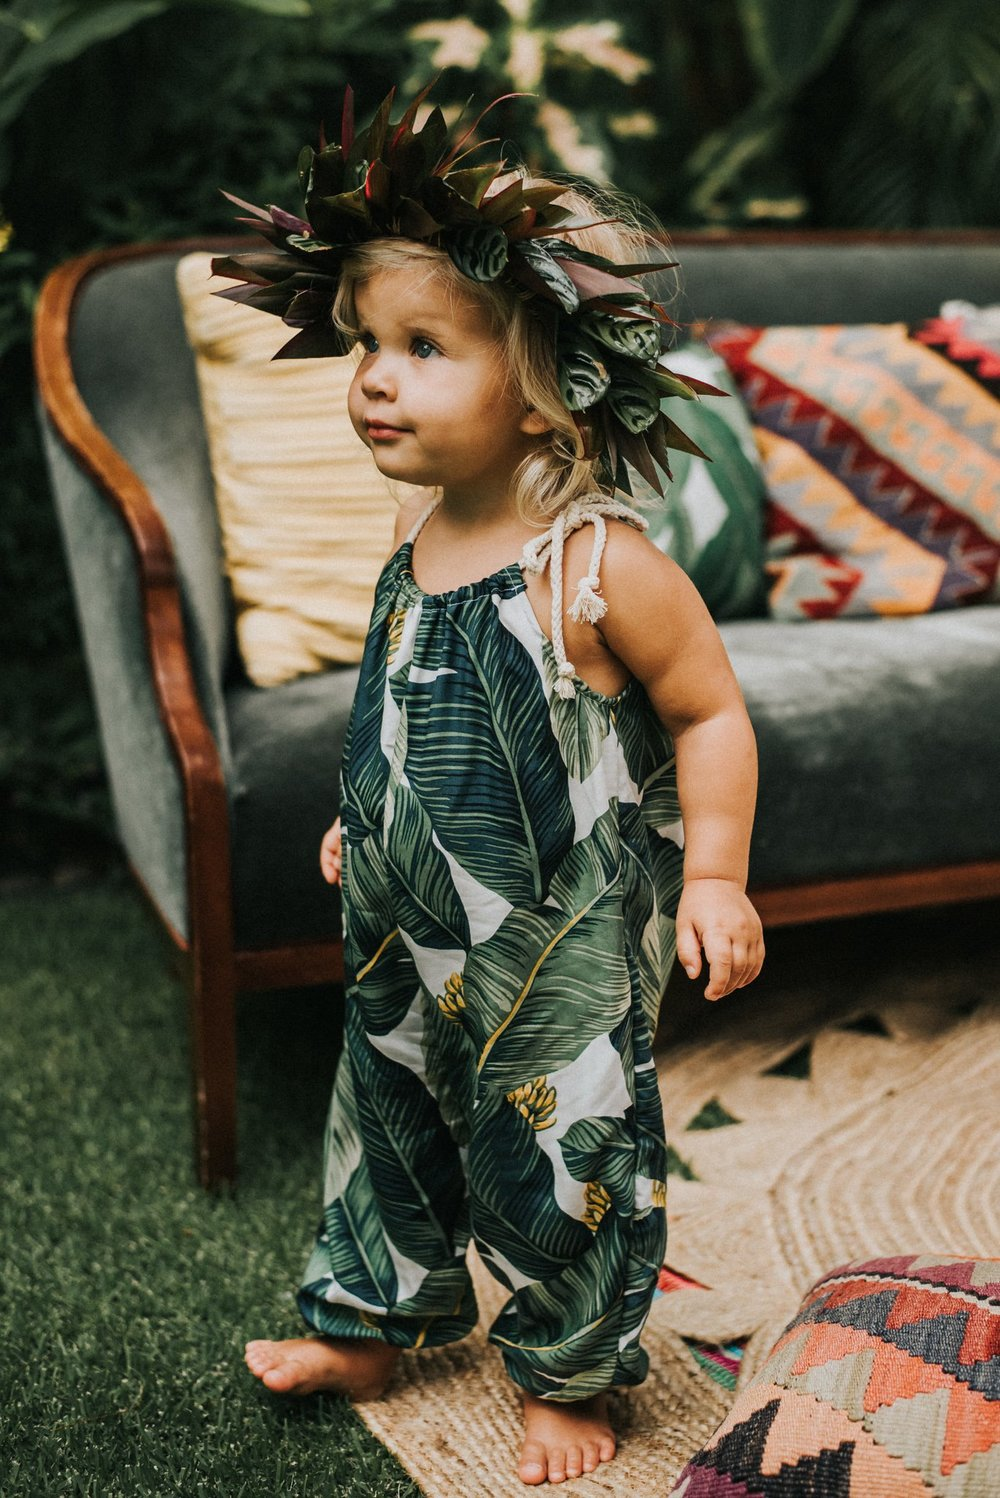 Lucy Romper in banana leaf   Photo By:  Gabriella Katalin